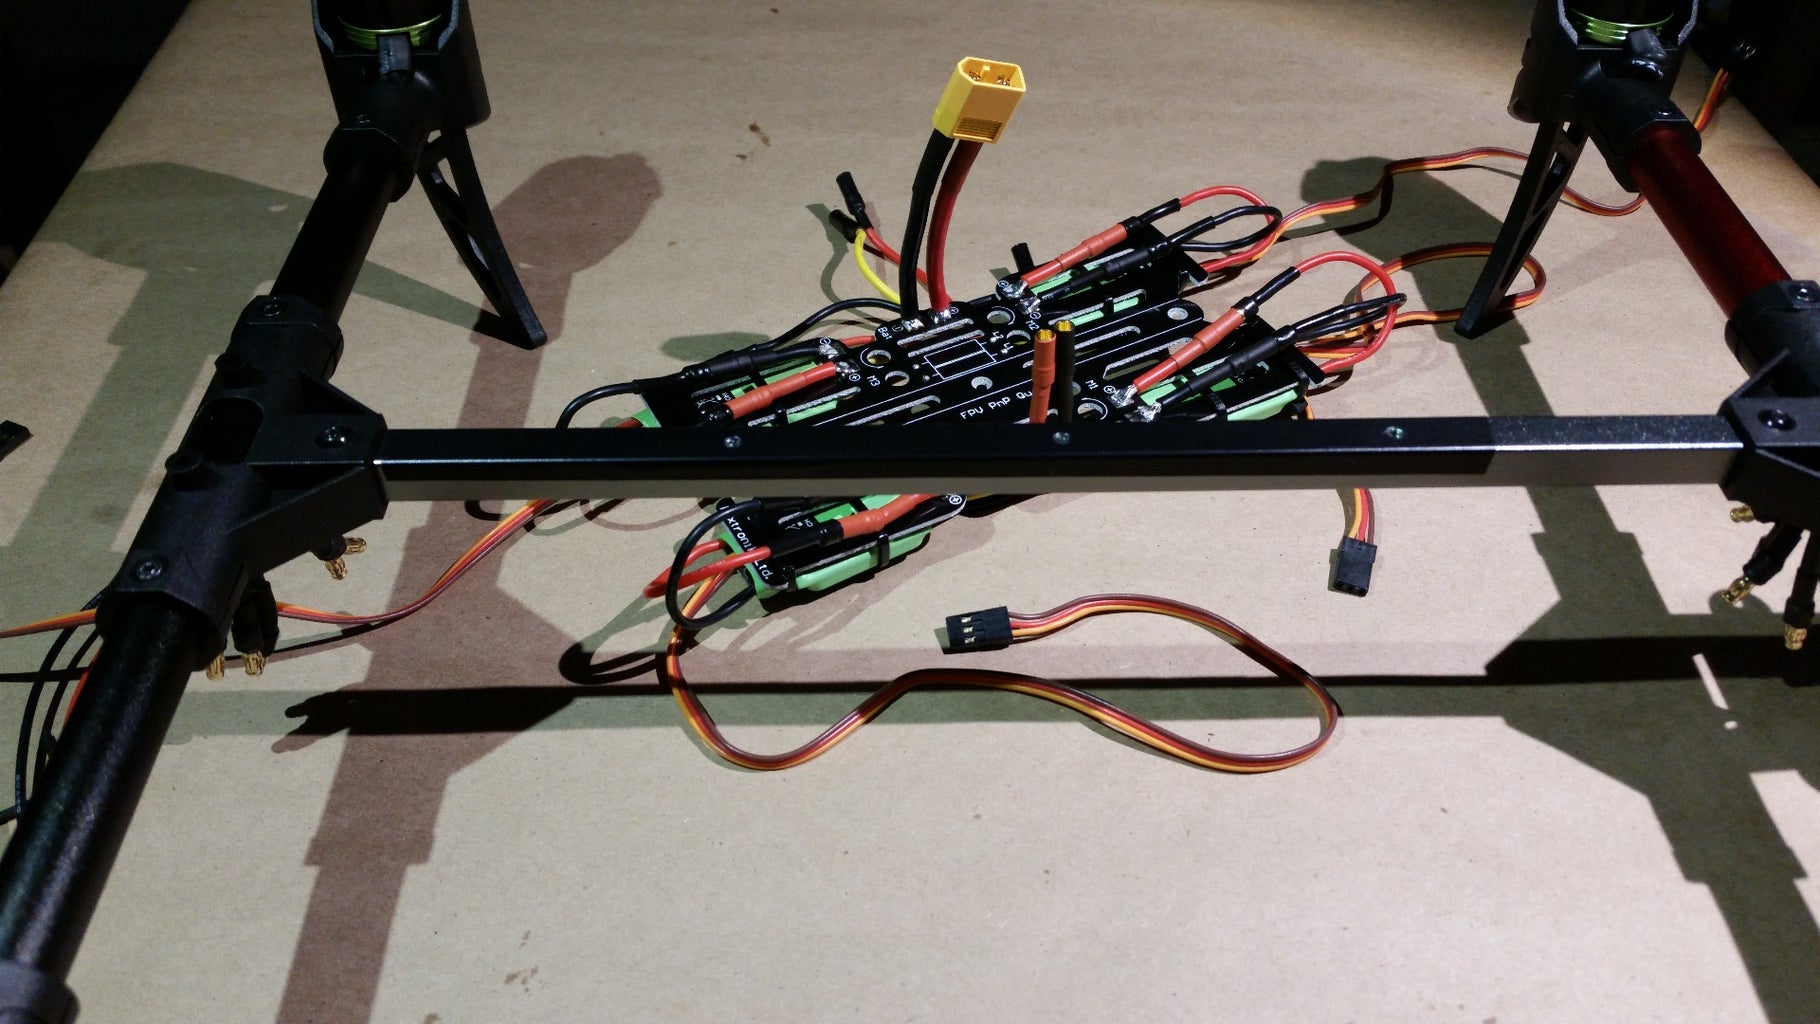 Mount the Power Distribution Board to the Inner Frame